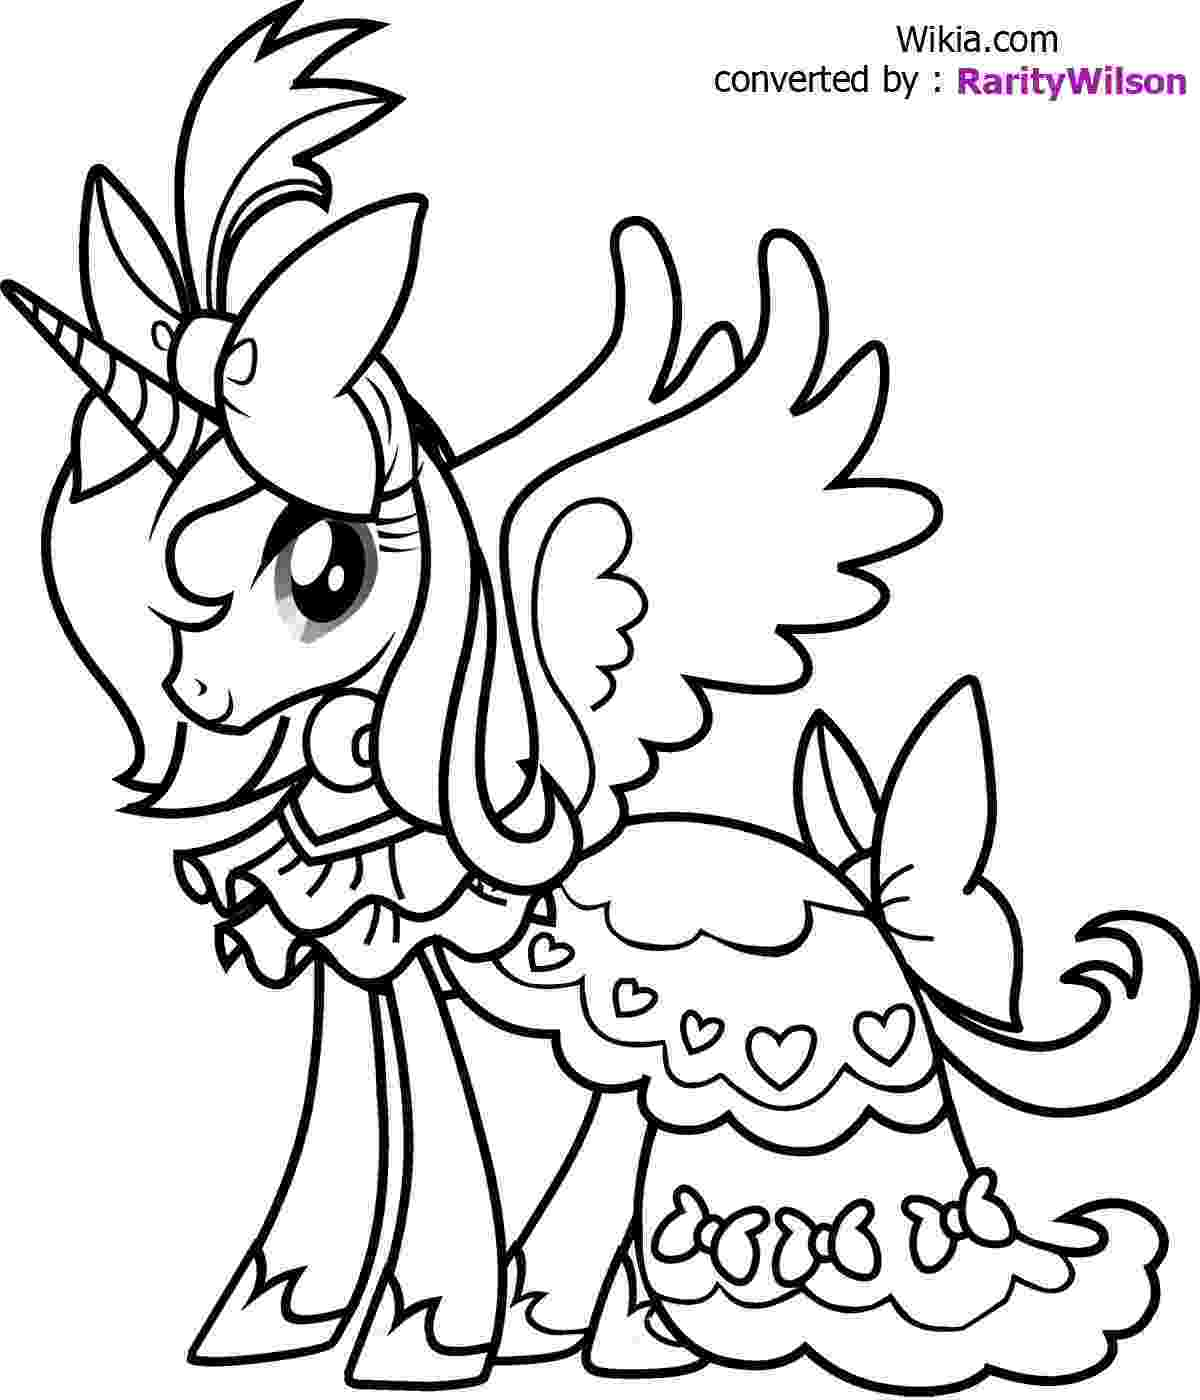 my little pony coloring images my little pony fluttershy coloring pages for kids my pony images little coloring